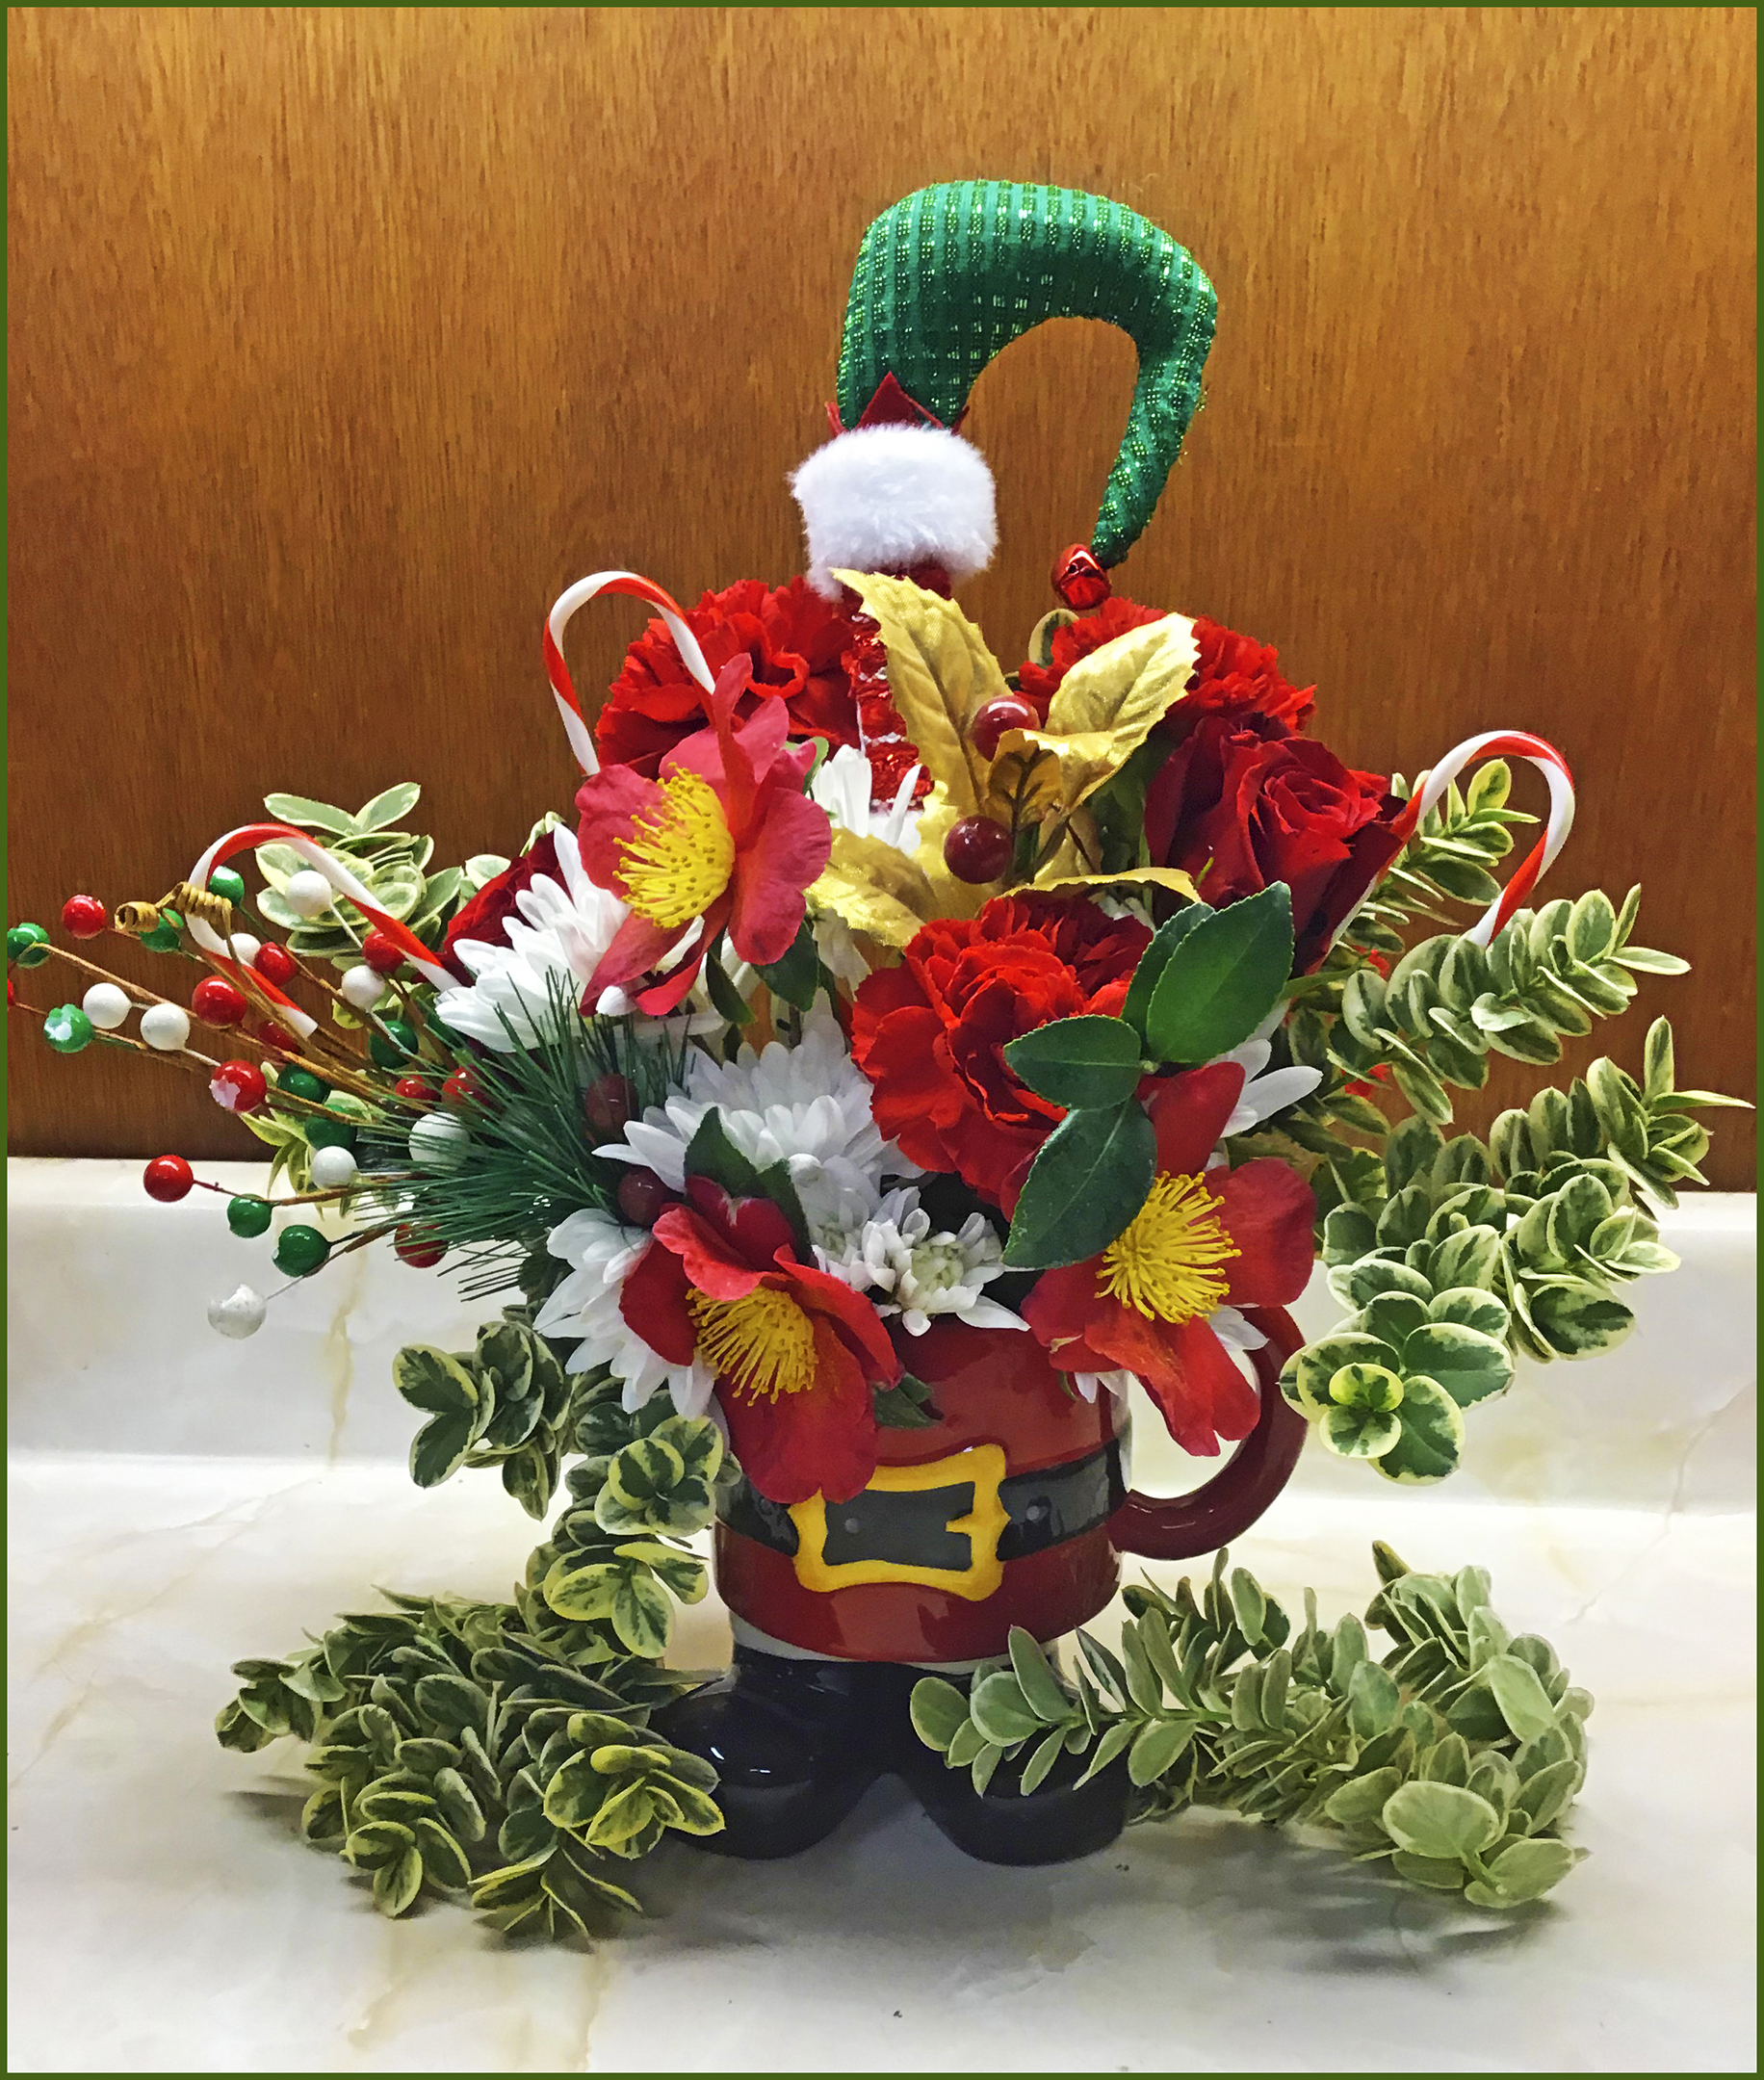 Floral Arrangement Contest - Second Prize Winner